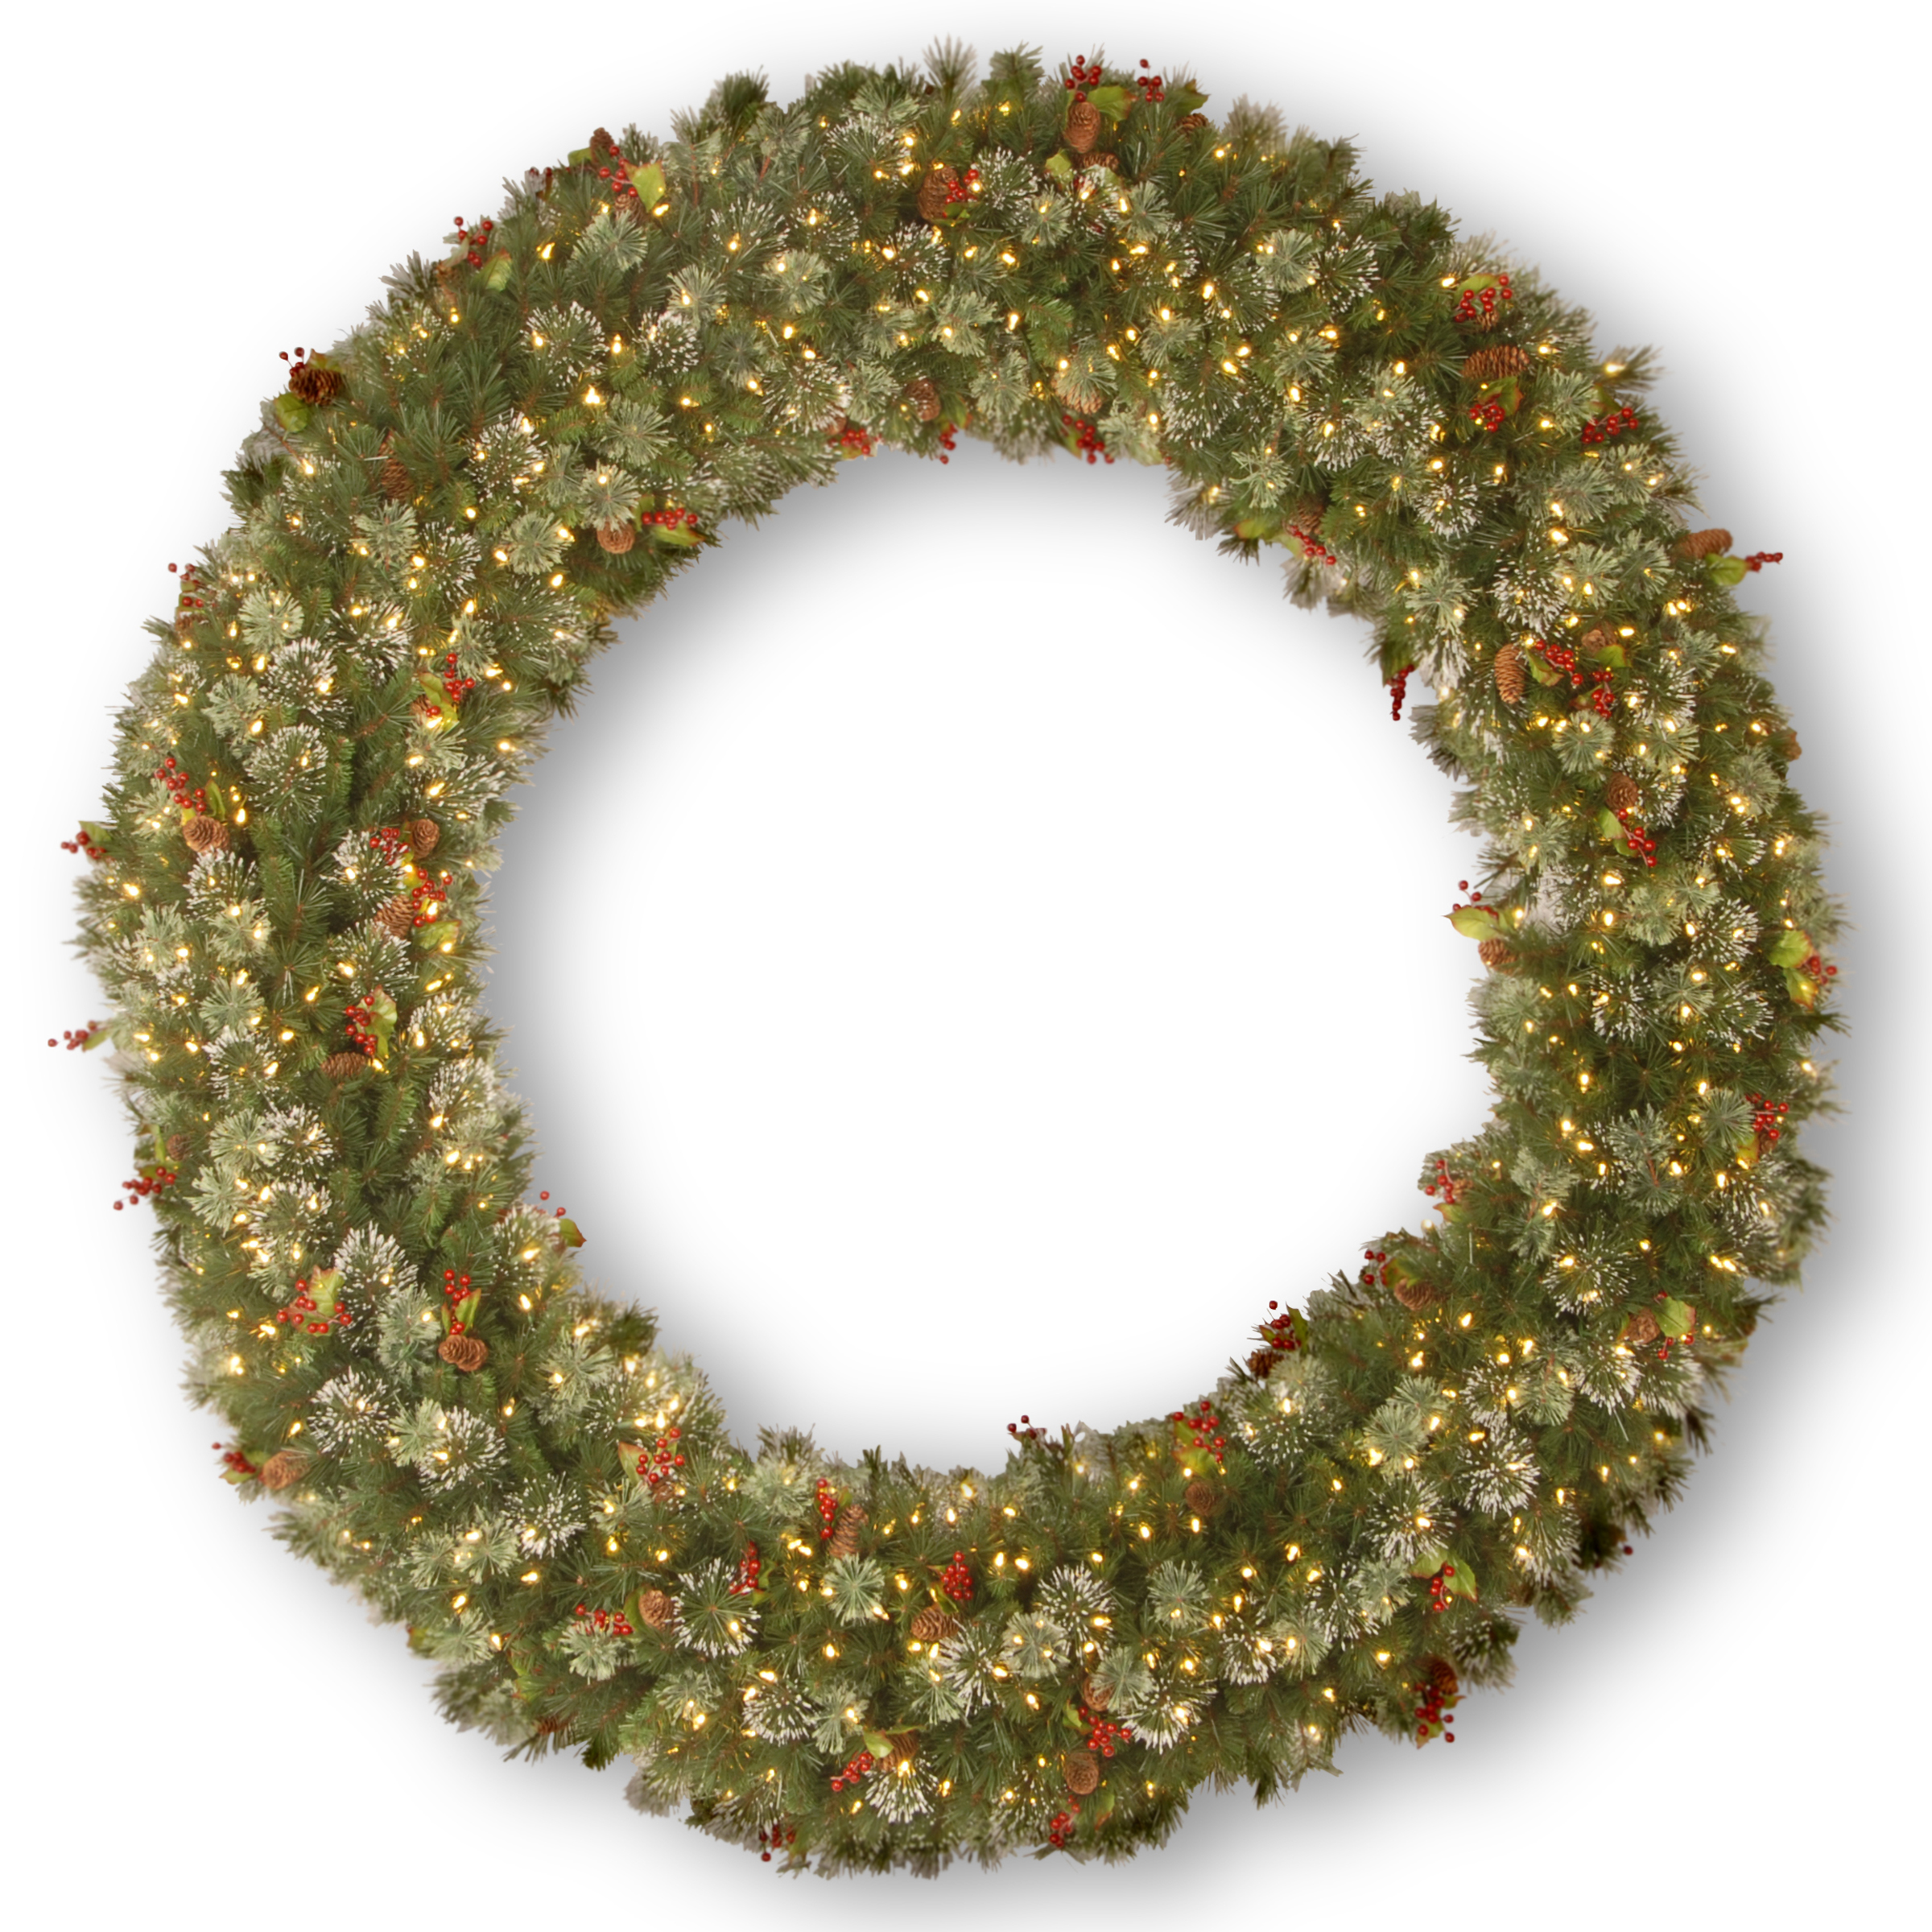 National Tree 72 Wintry Pine Wreath With Cones Red Berries Snowflakes With 400 Clear Lights Walmart Com Walmart Com